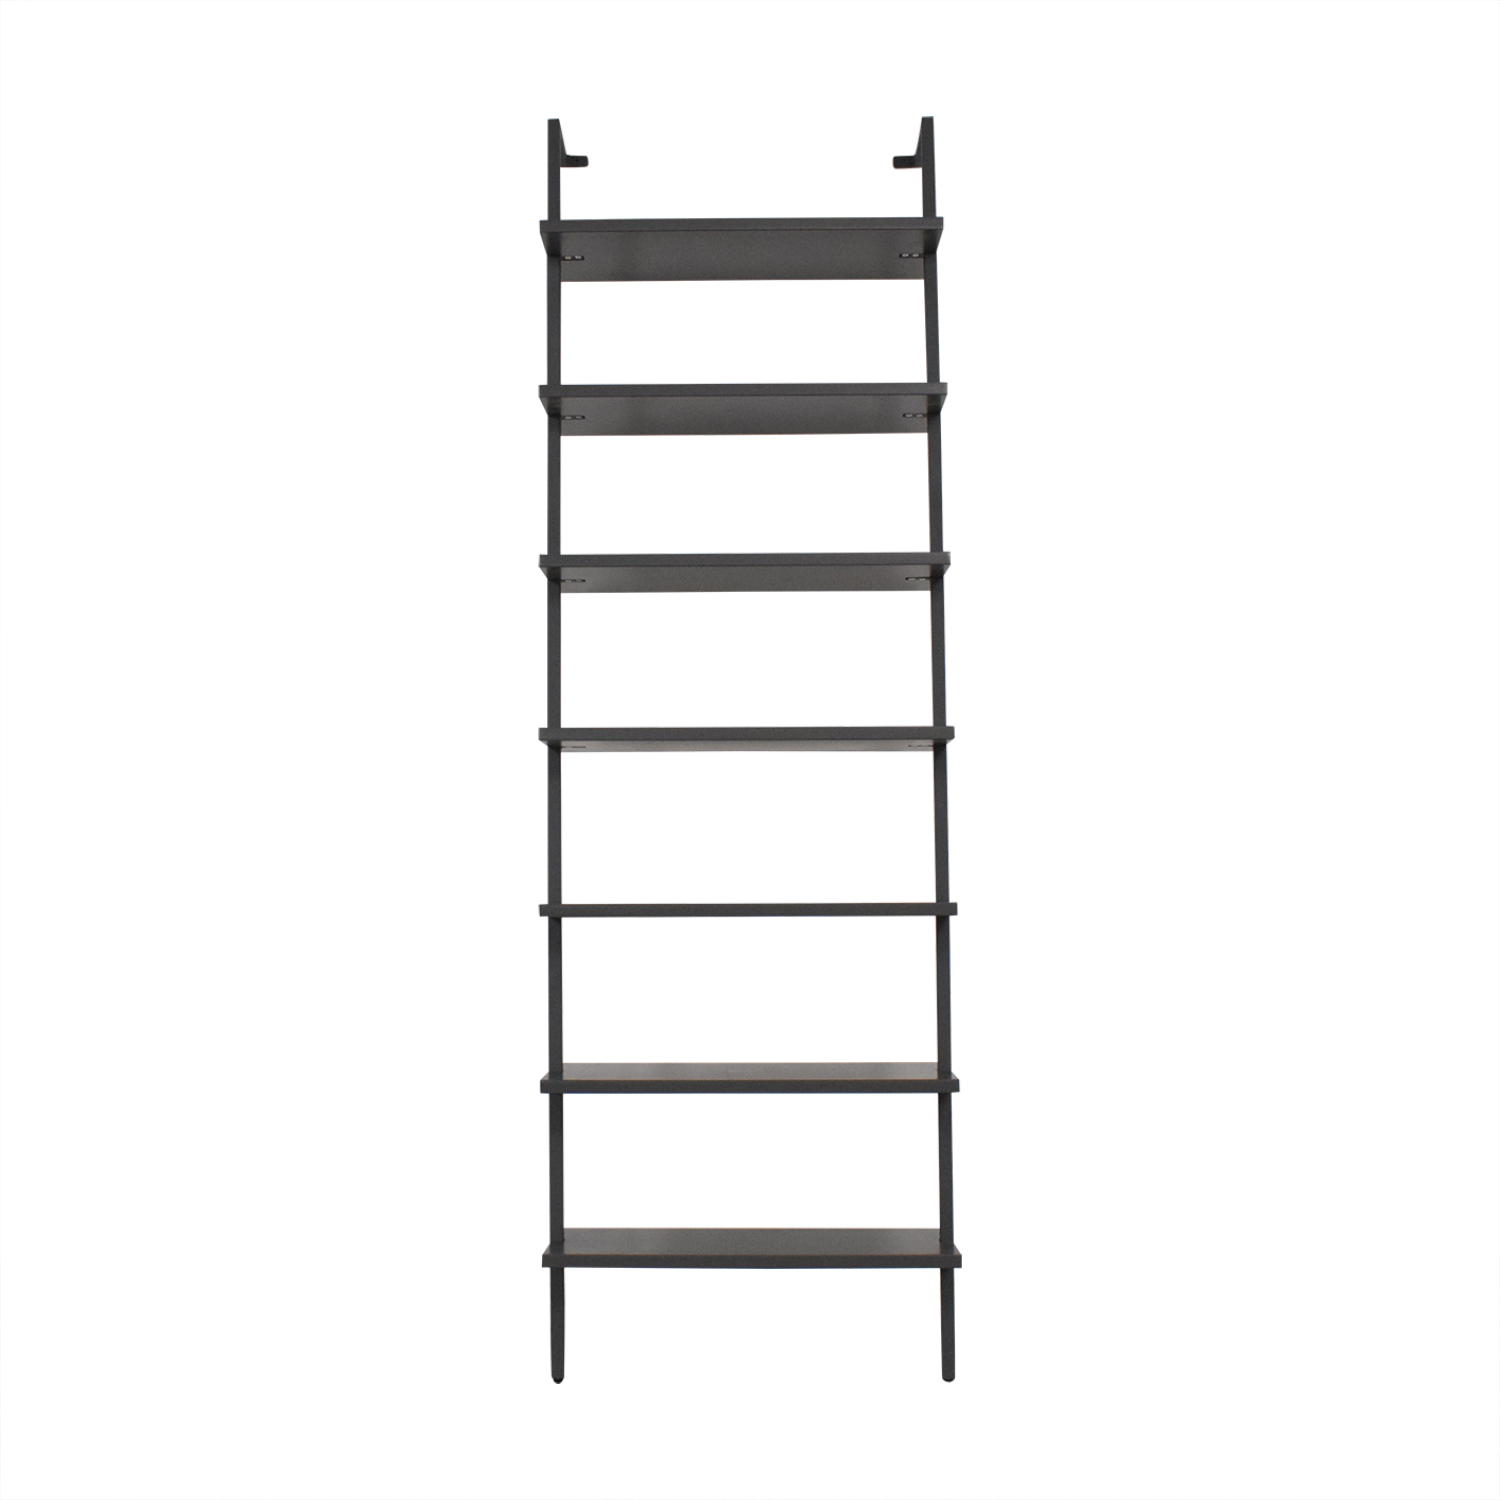 23 Off Cb2 Cb2 Stairway Wall Mounted Bookcase Storage